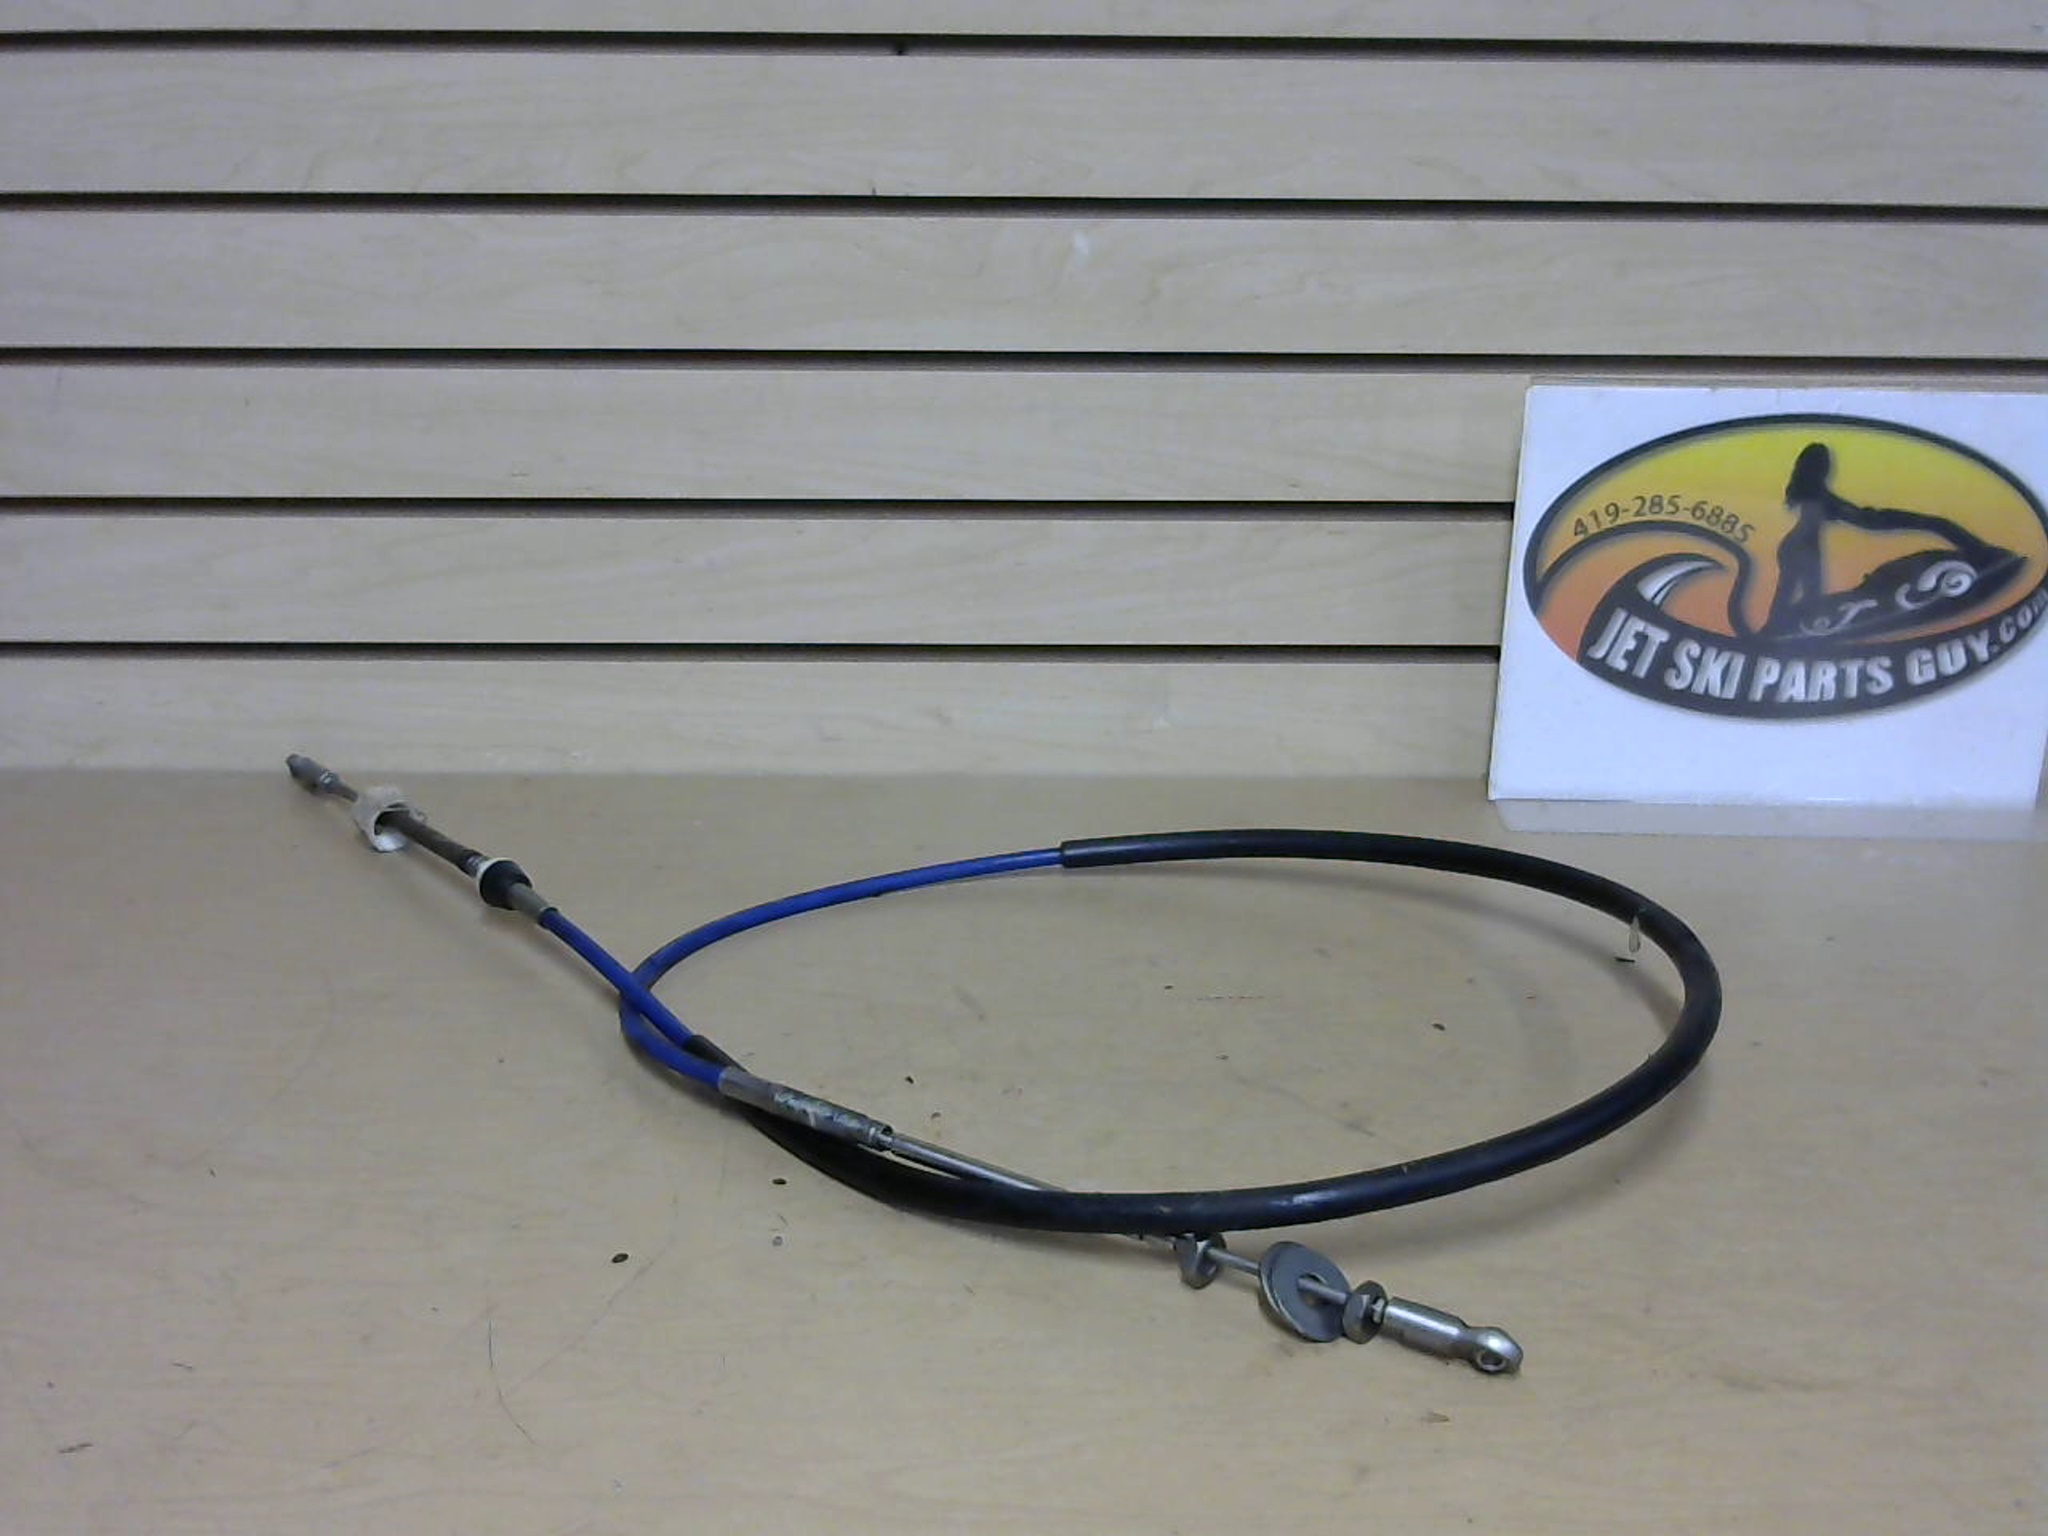 1997 Tigershark Daytona 1000 Steering Cable 1673-355